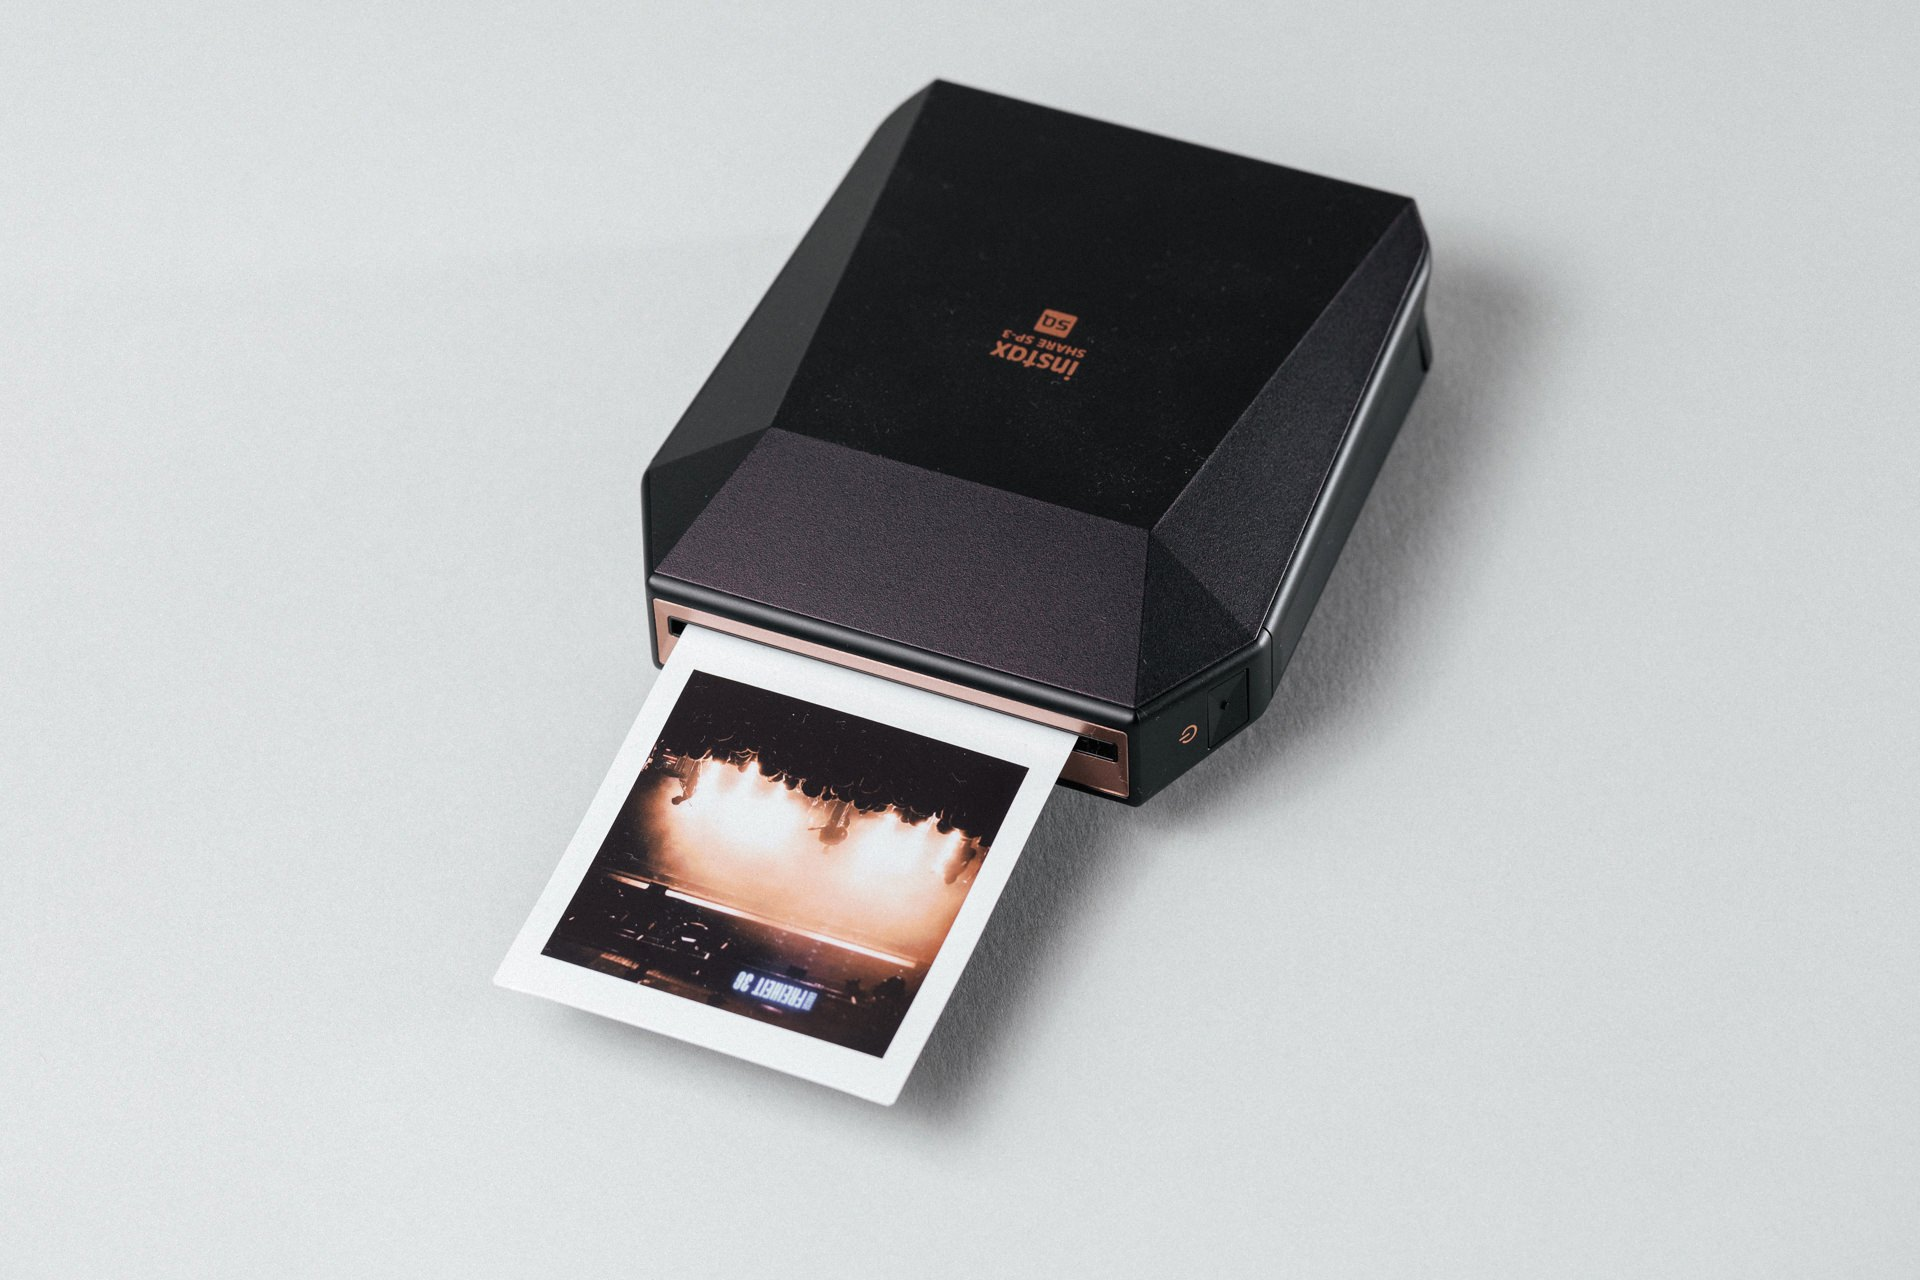 Fujifilm Instax Square SP3 Smartphone Printer